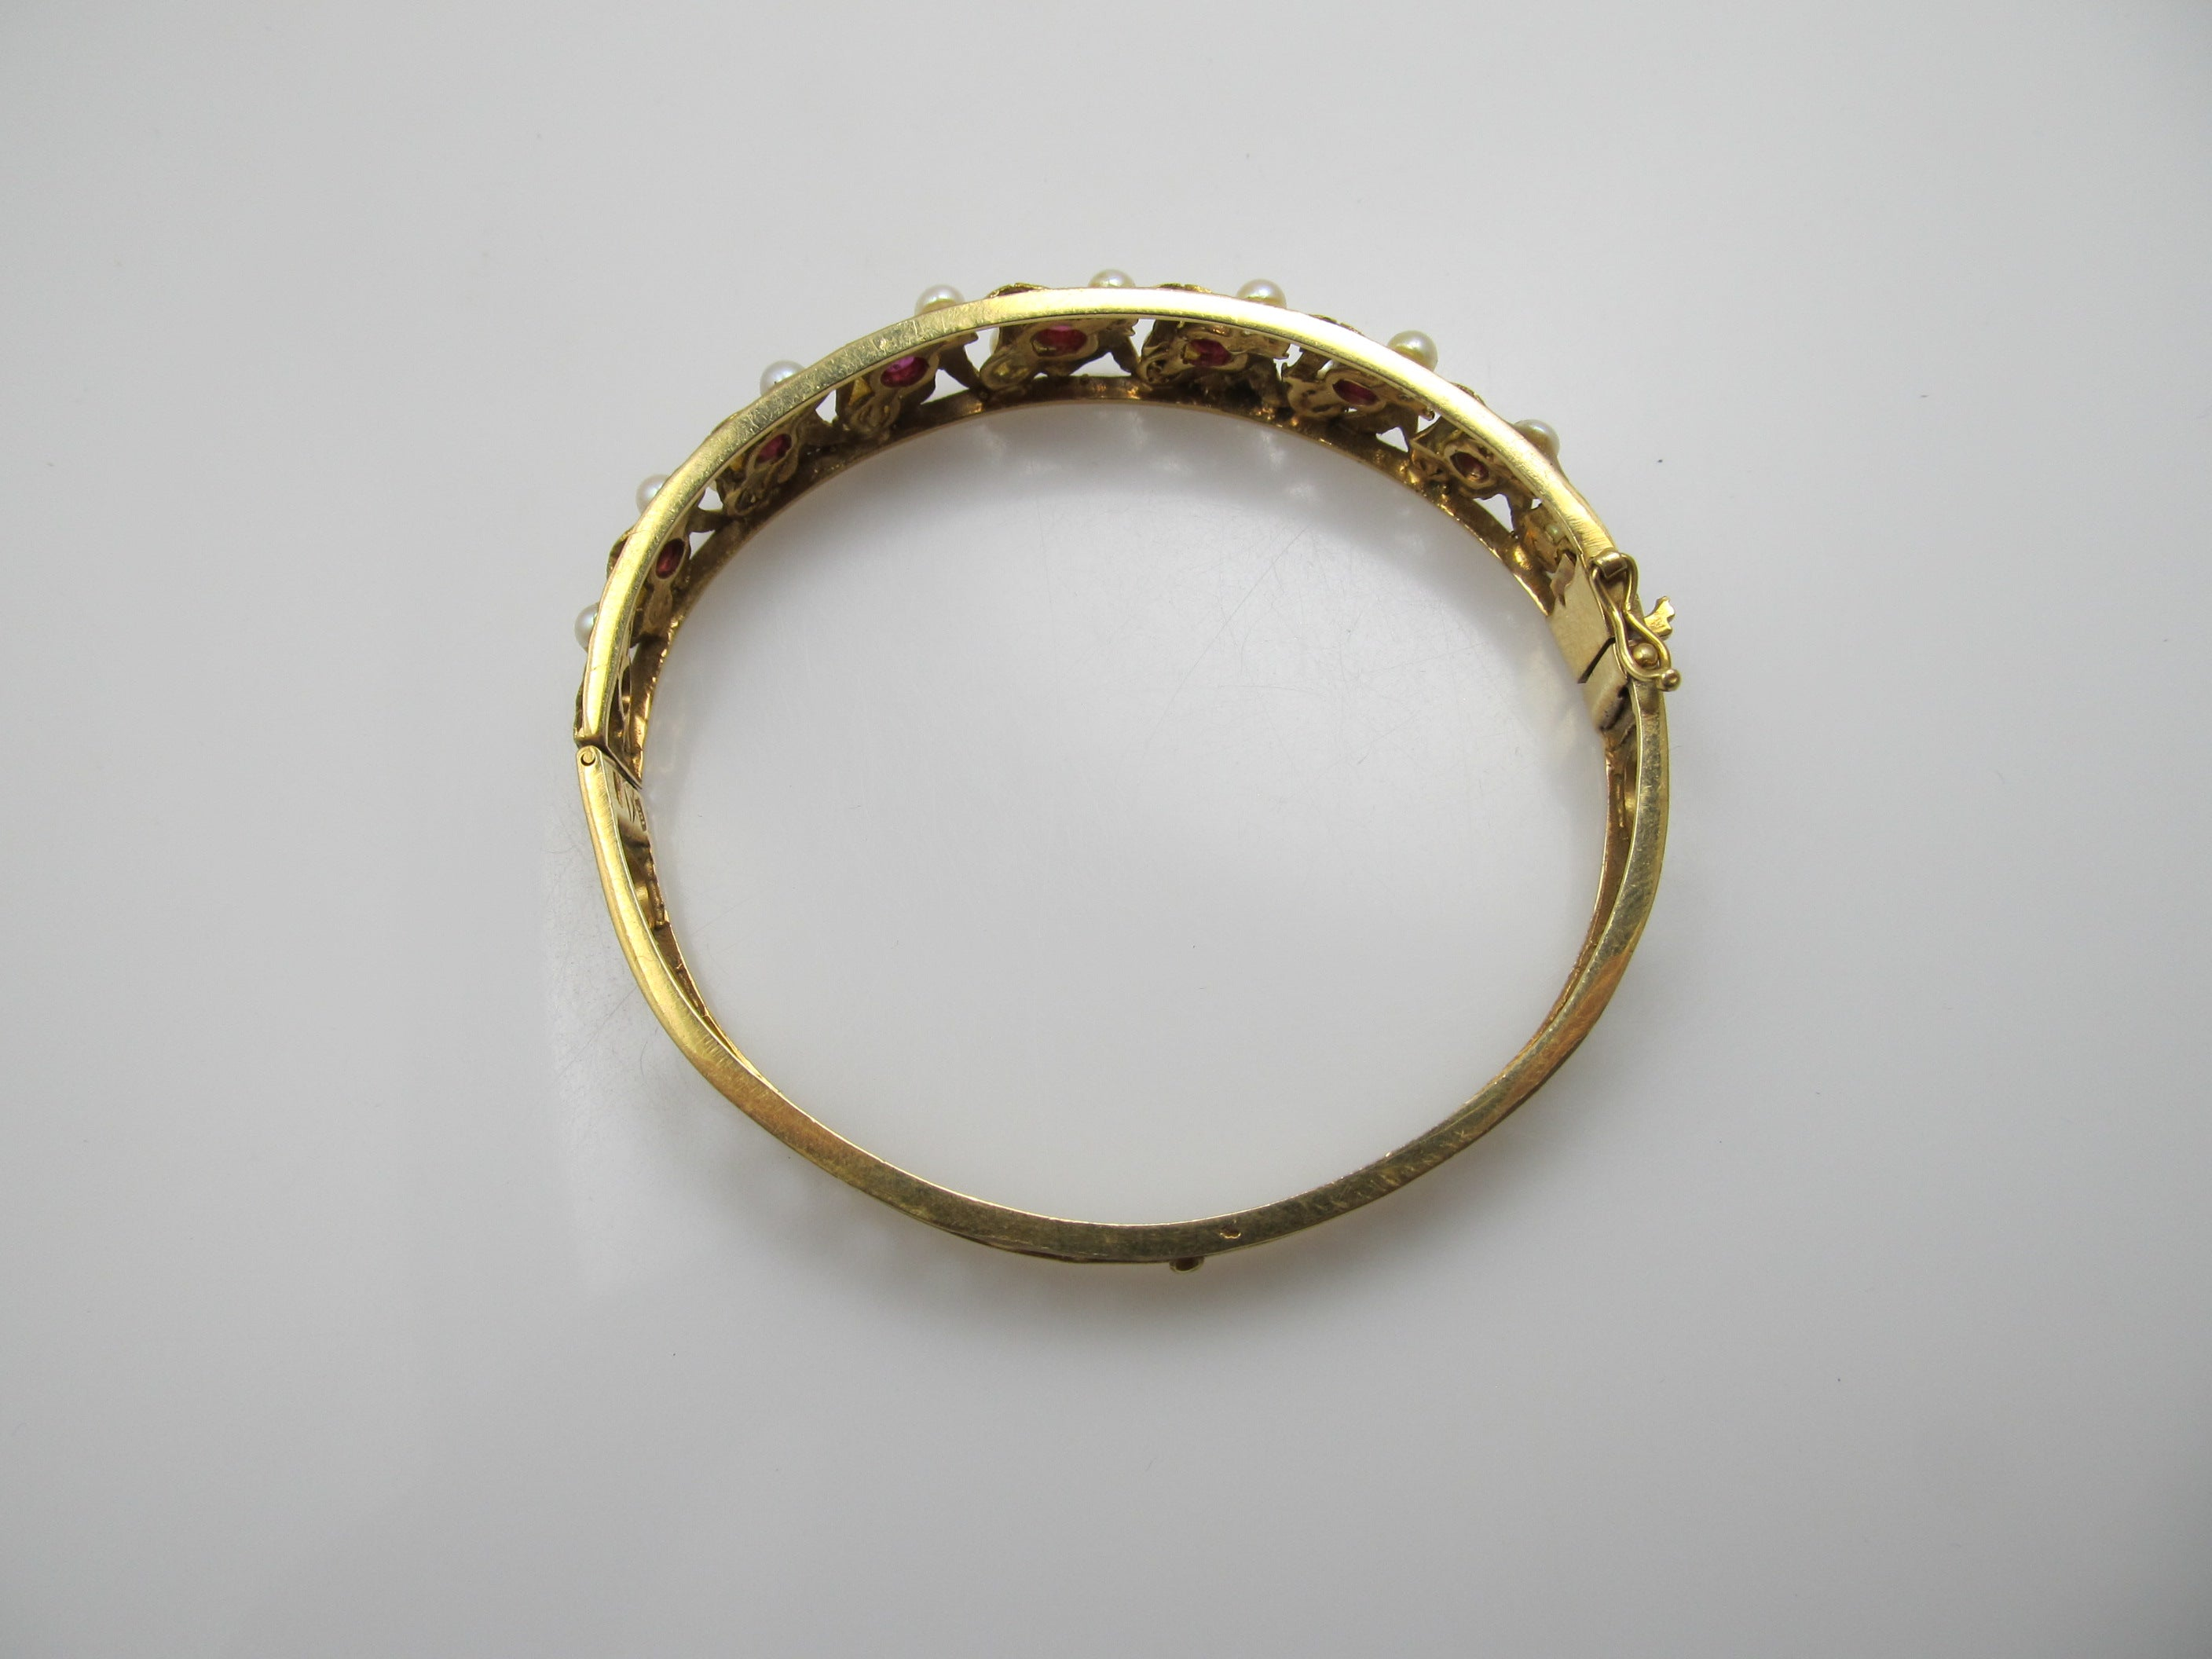 out bangles day into gold bracelets bangle pave round night with the white stunning this diamond solid bracelet circles